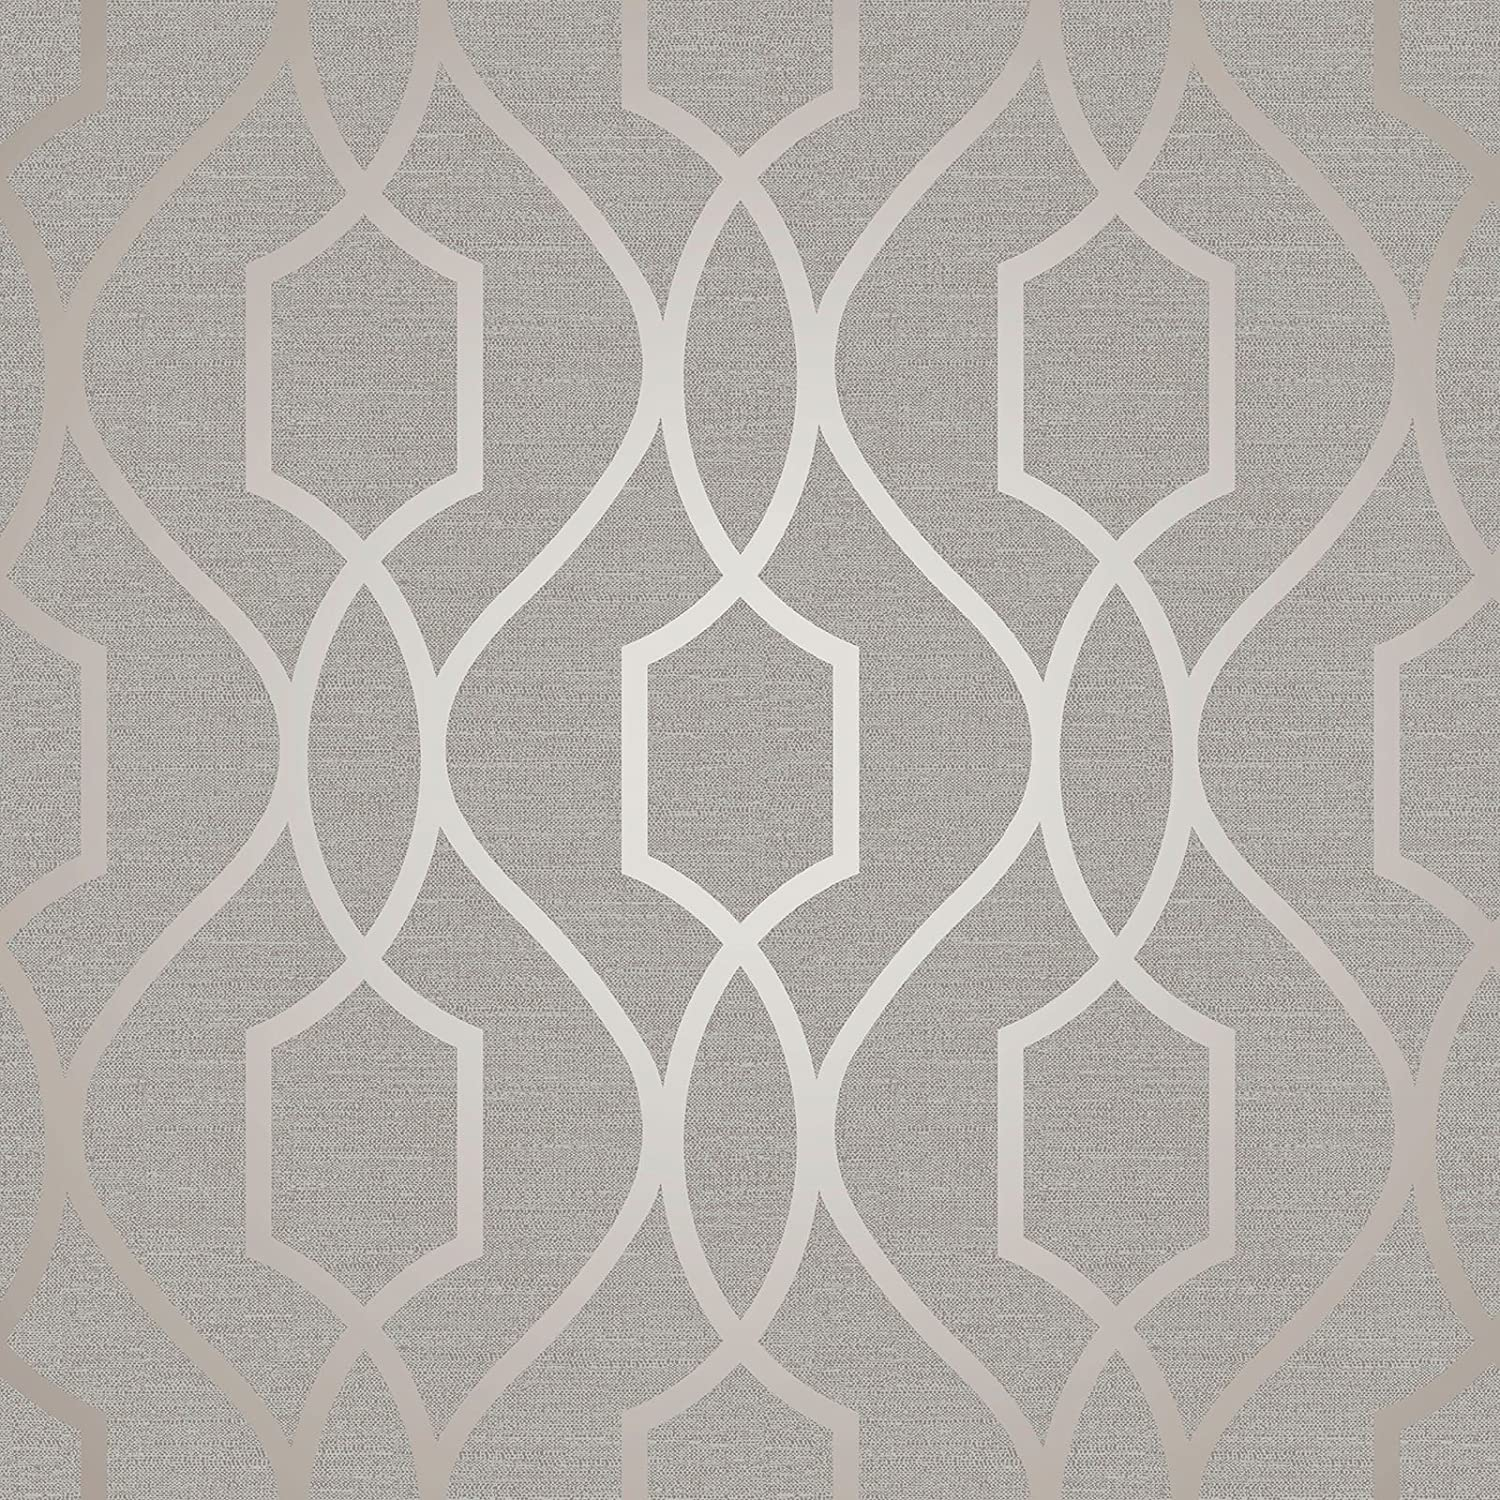 Simple Wallpaper Marble Girly - 91nv6Ya3aQL  Graphic_239642.jpg